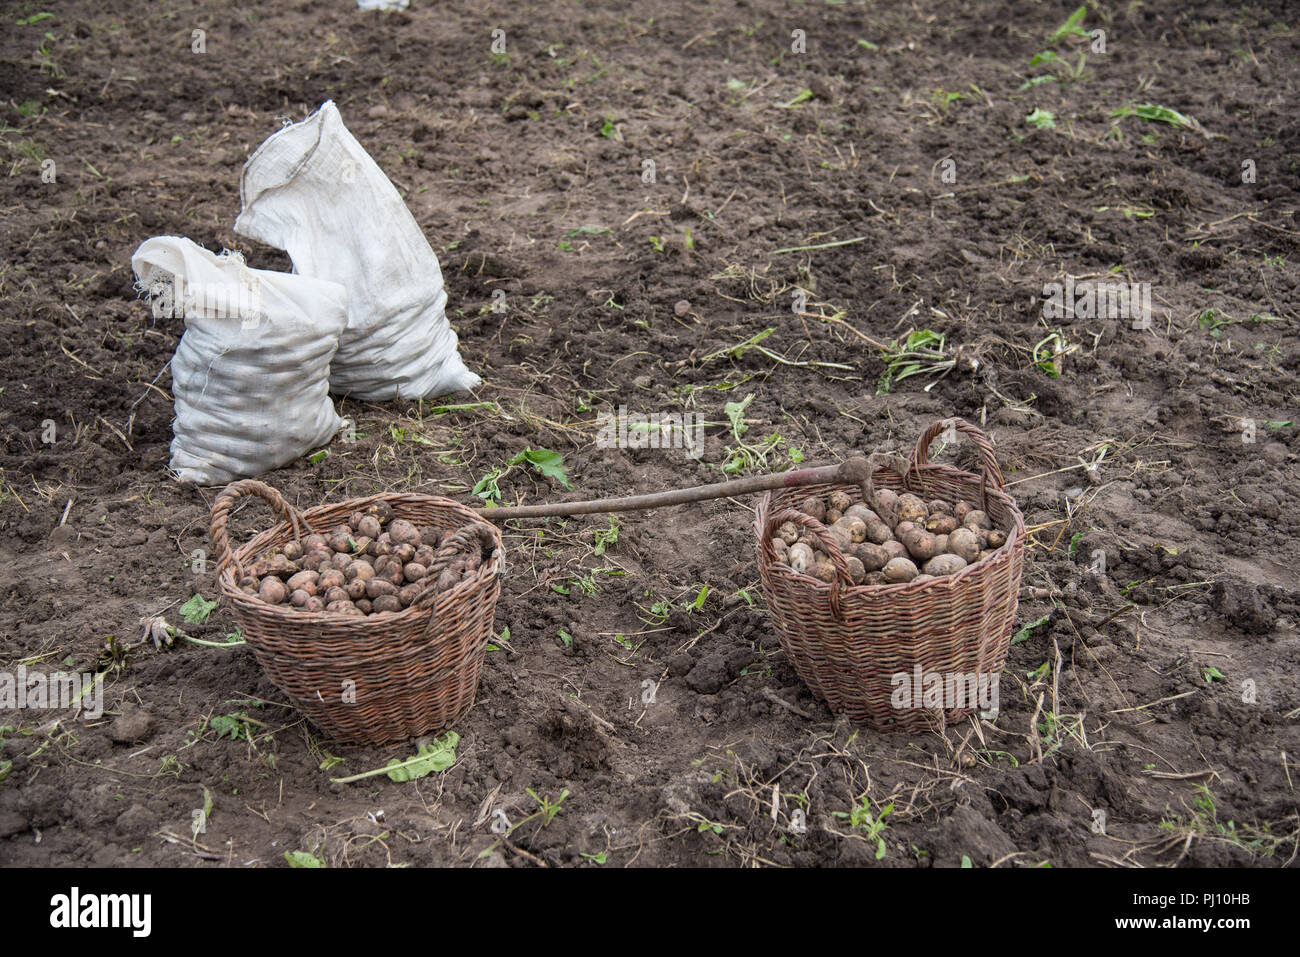 Two baskets filled with freshly dug potatoes are on the field and woven sacks filled with potatoes and hoe - hand tools for potato digging. Harvest - Stock Image